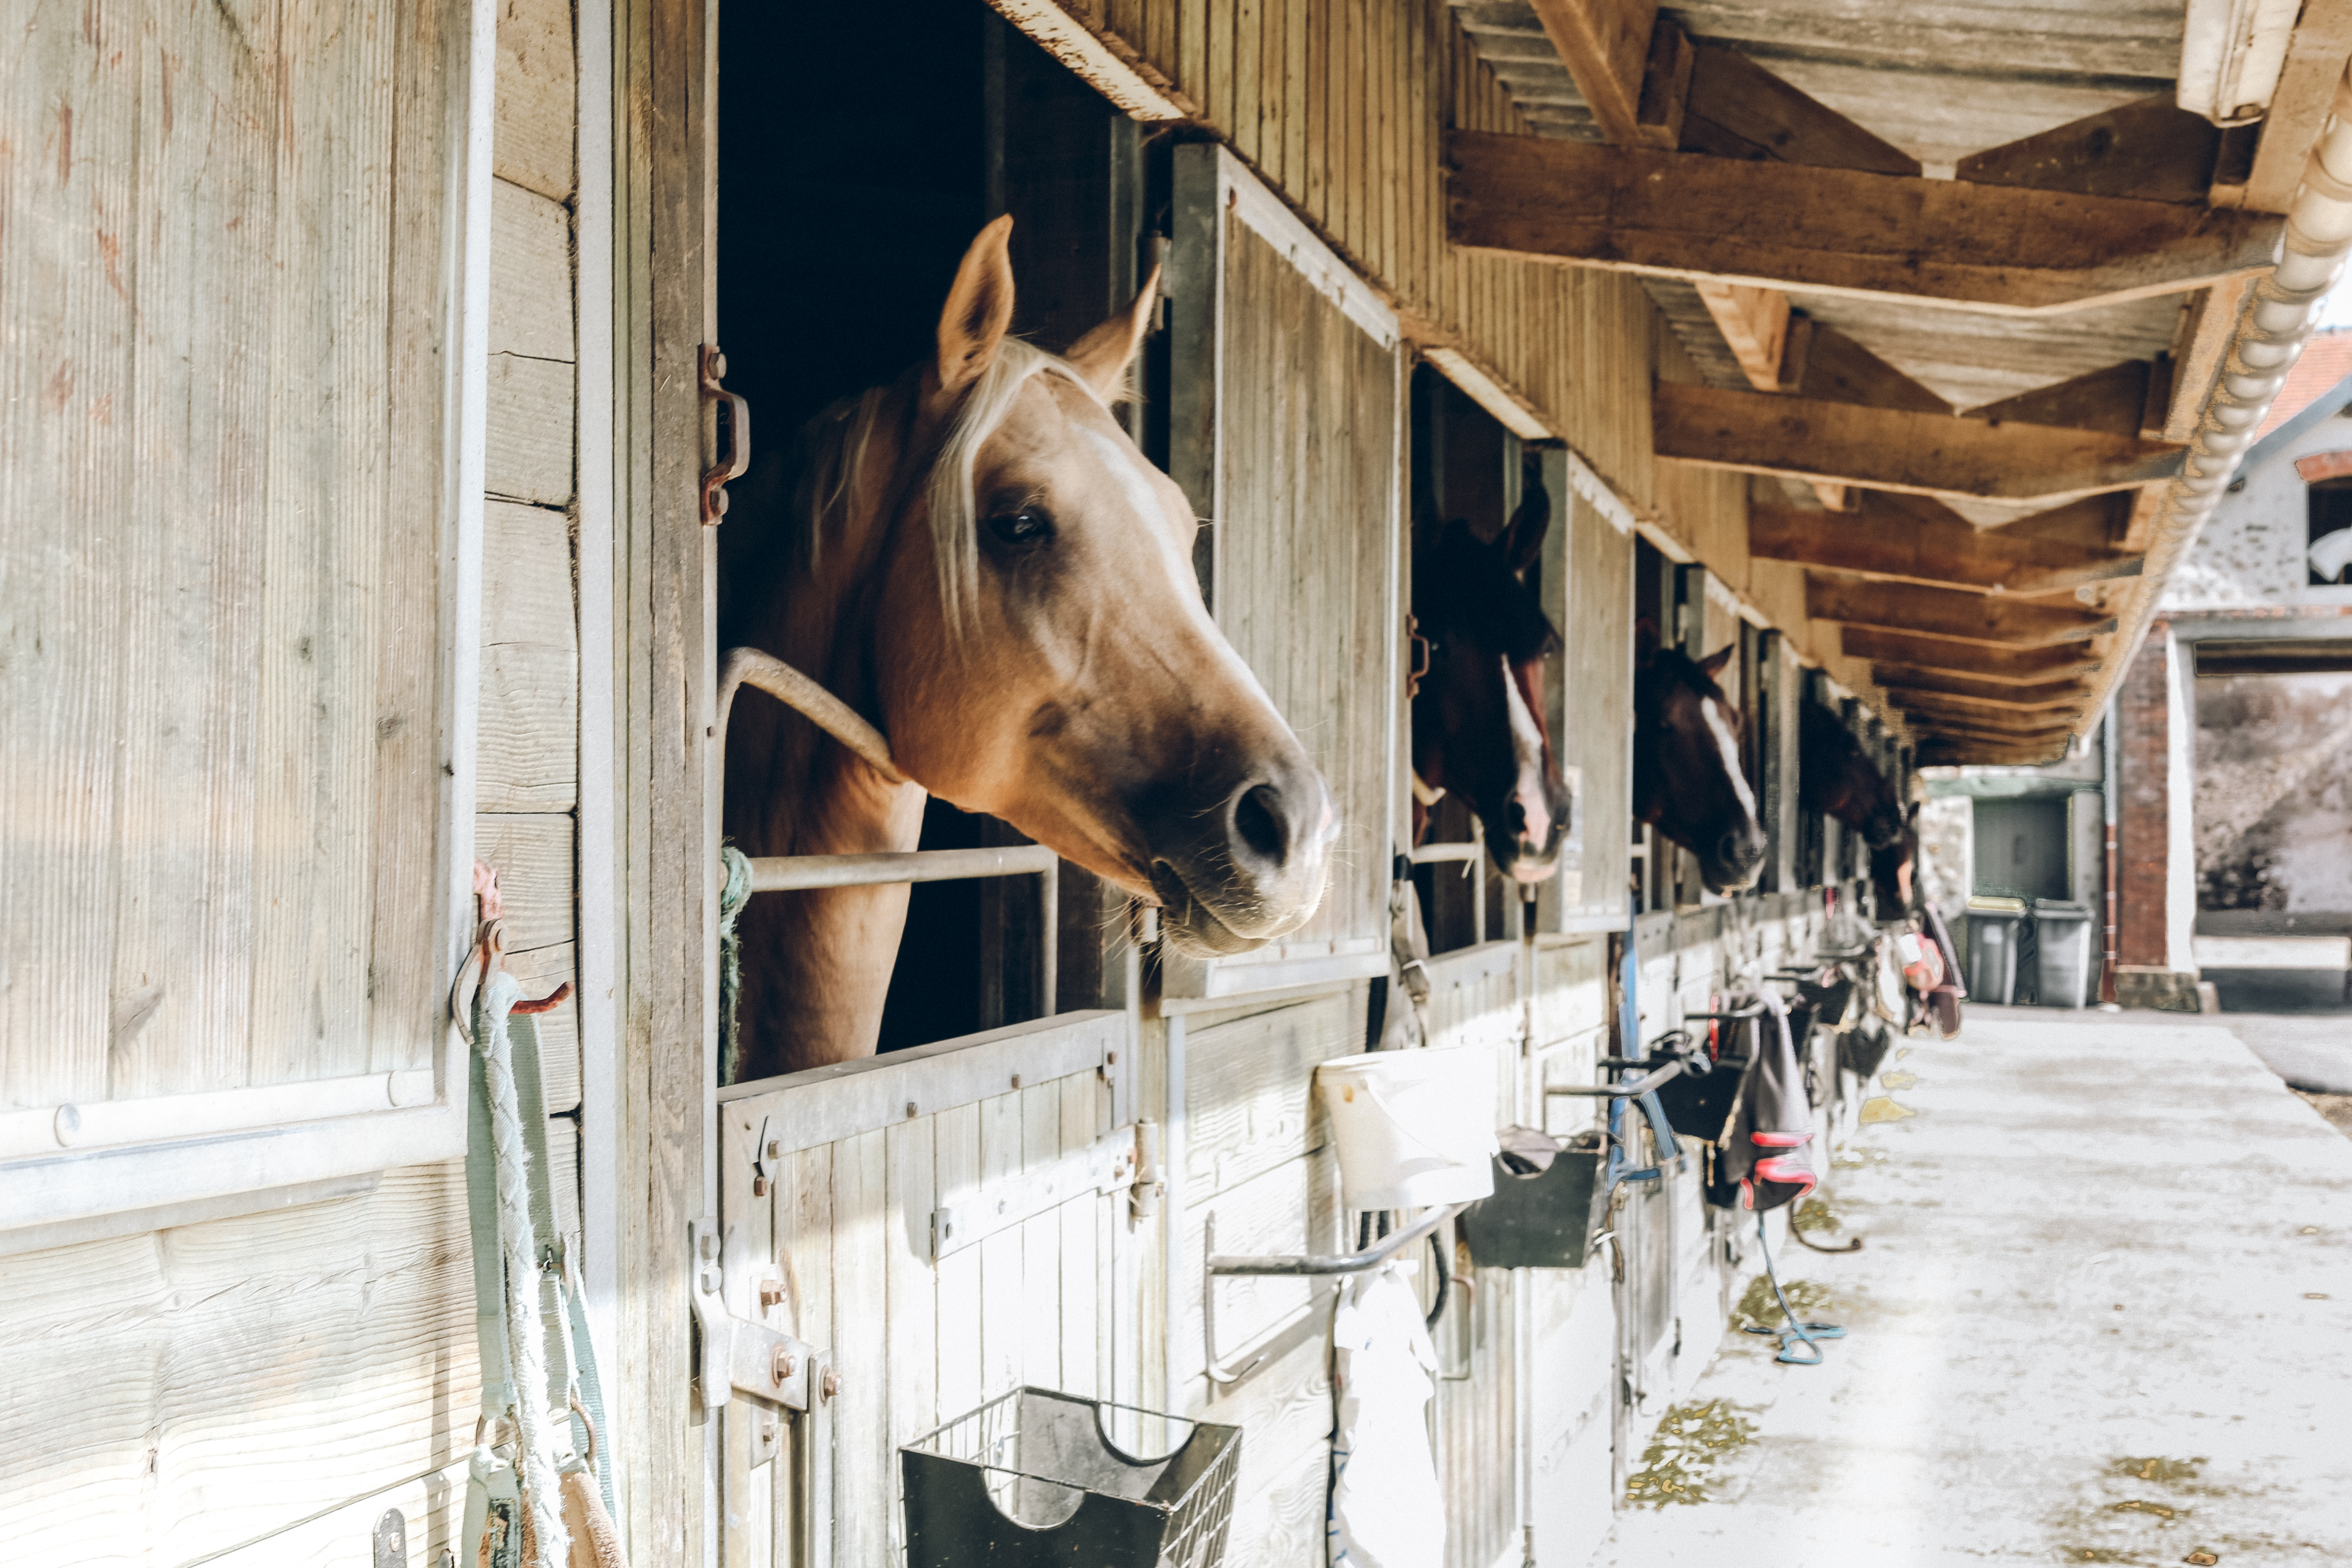 group of horse inside wooden cage during daytime